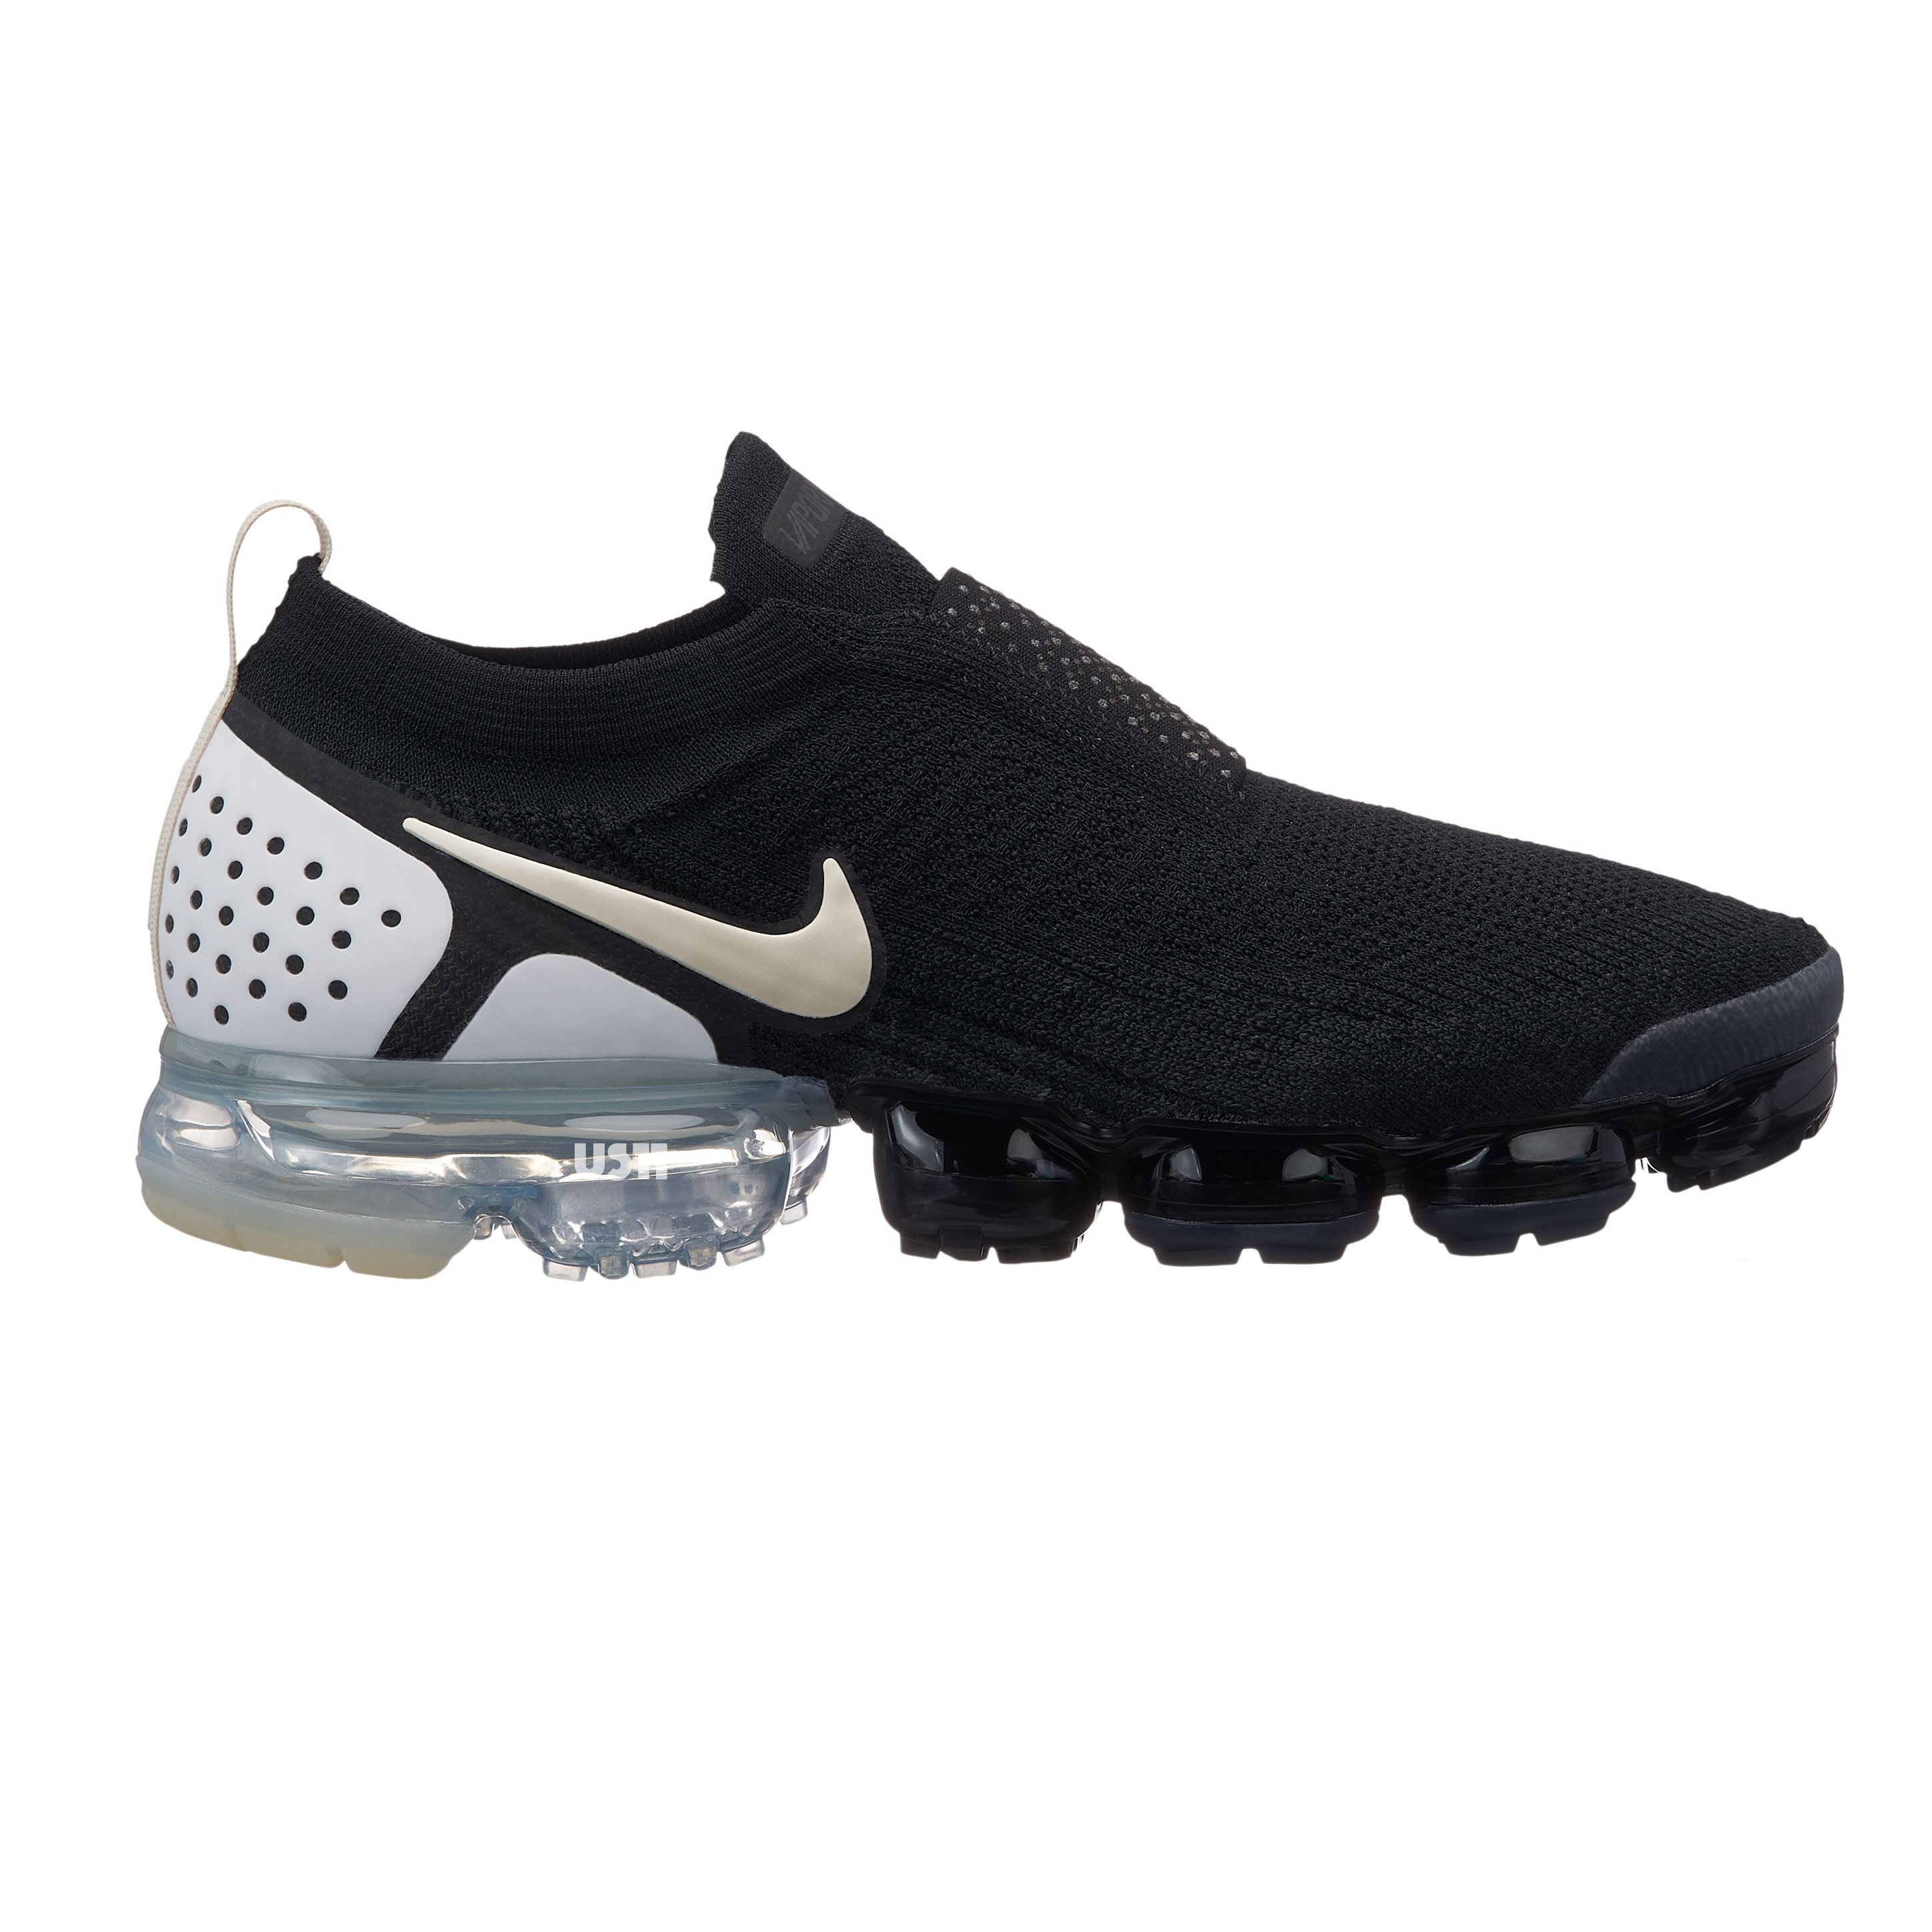 outlet online outlet on sale most popular nike air vapormax flyknit moc 2 - WearTesters